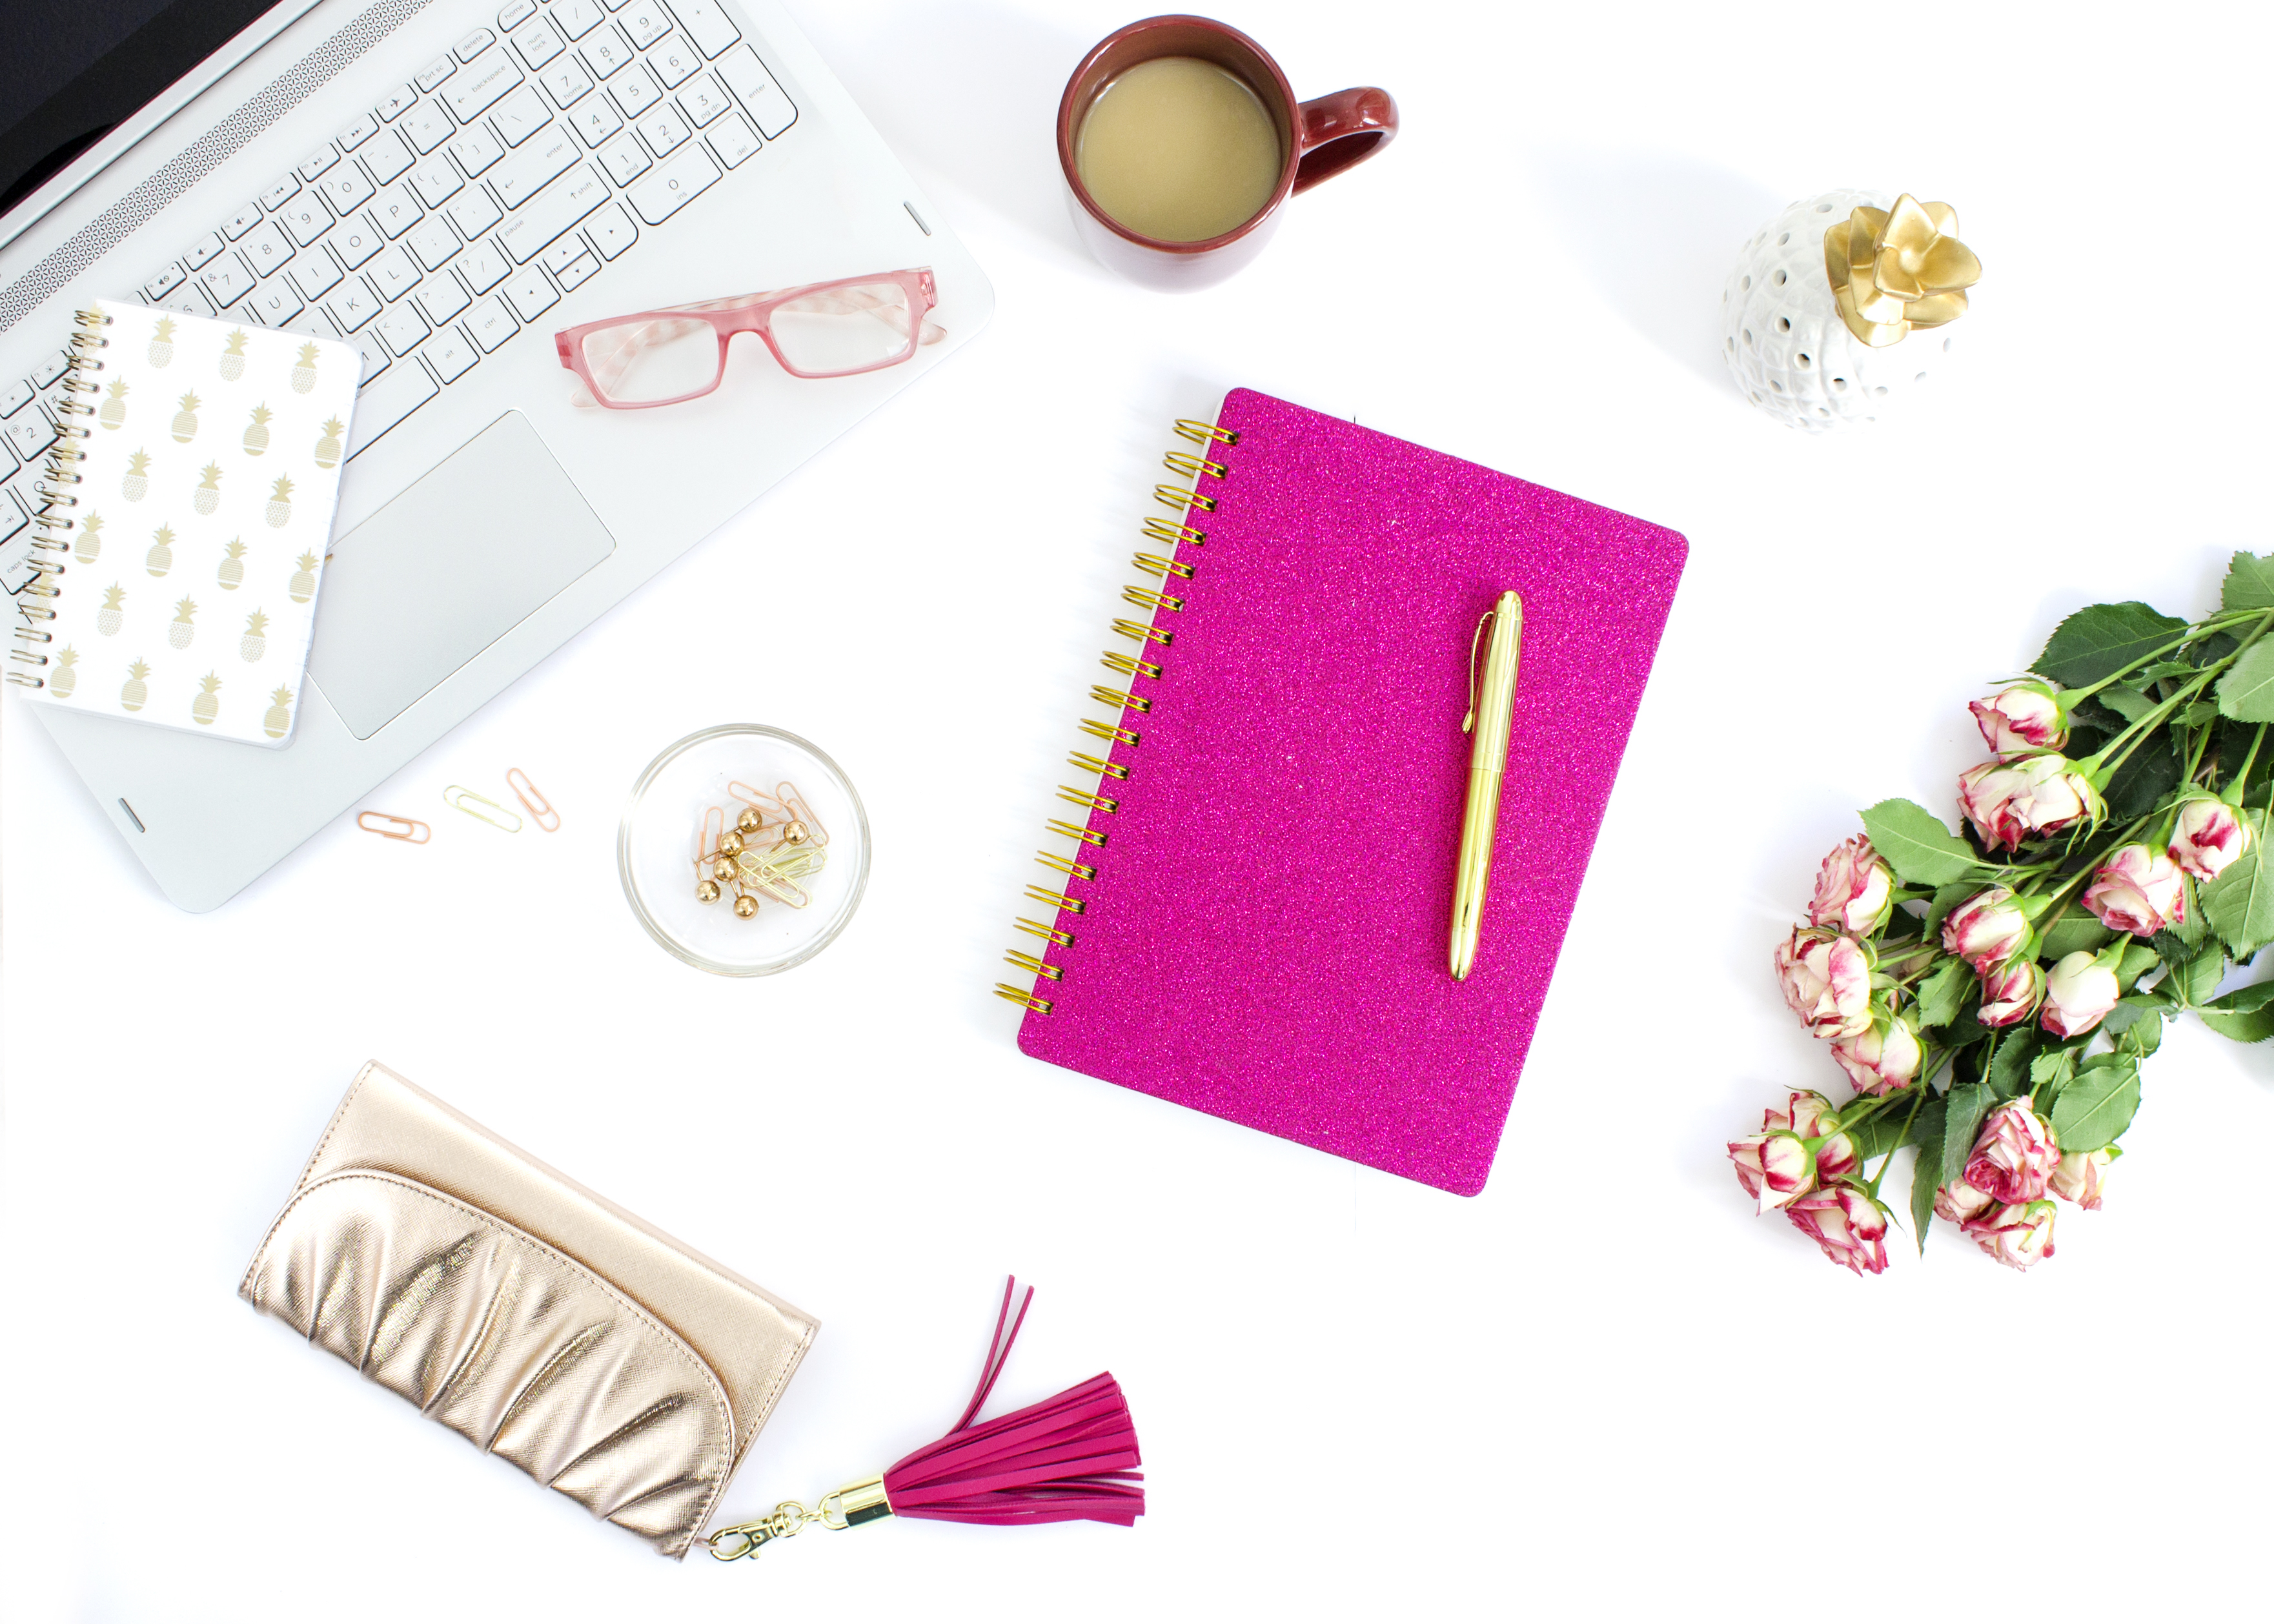 17 EXTRA CASH Hustle Ideas For Stay-at-Home Moms